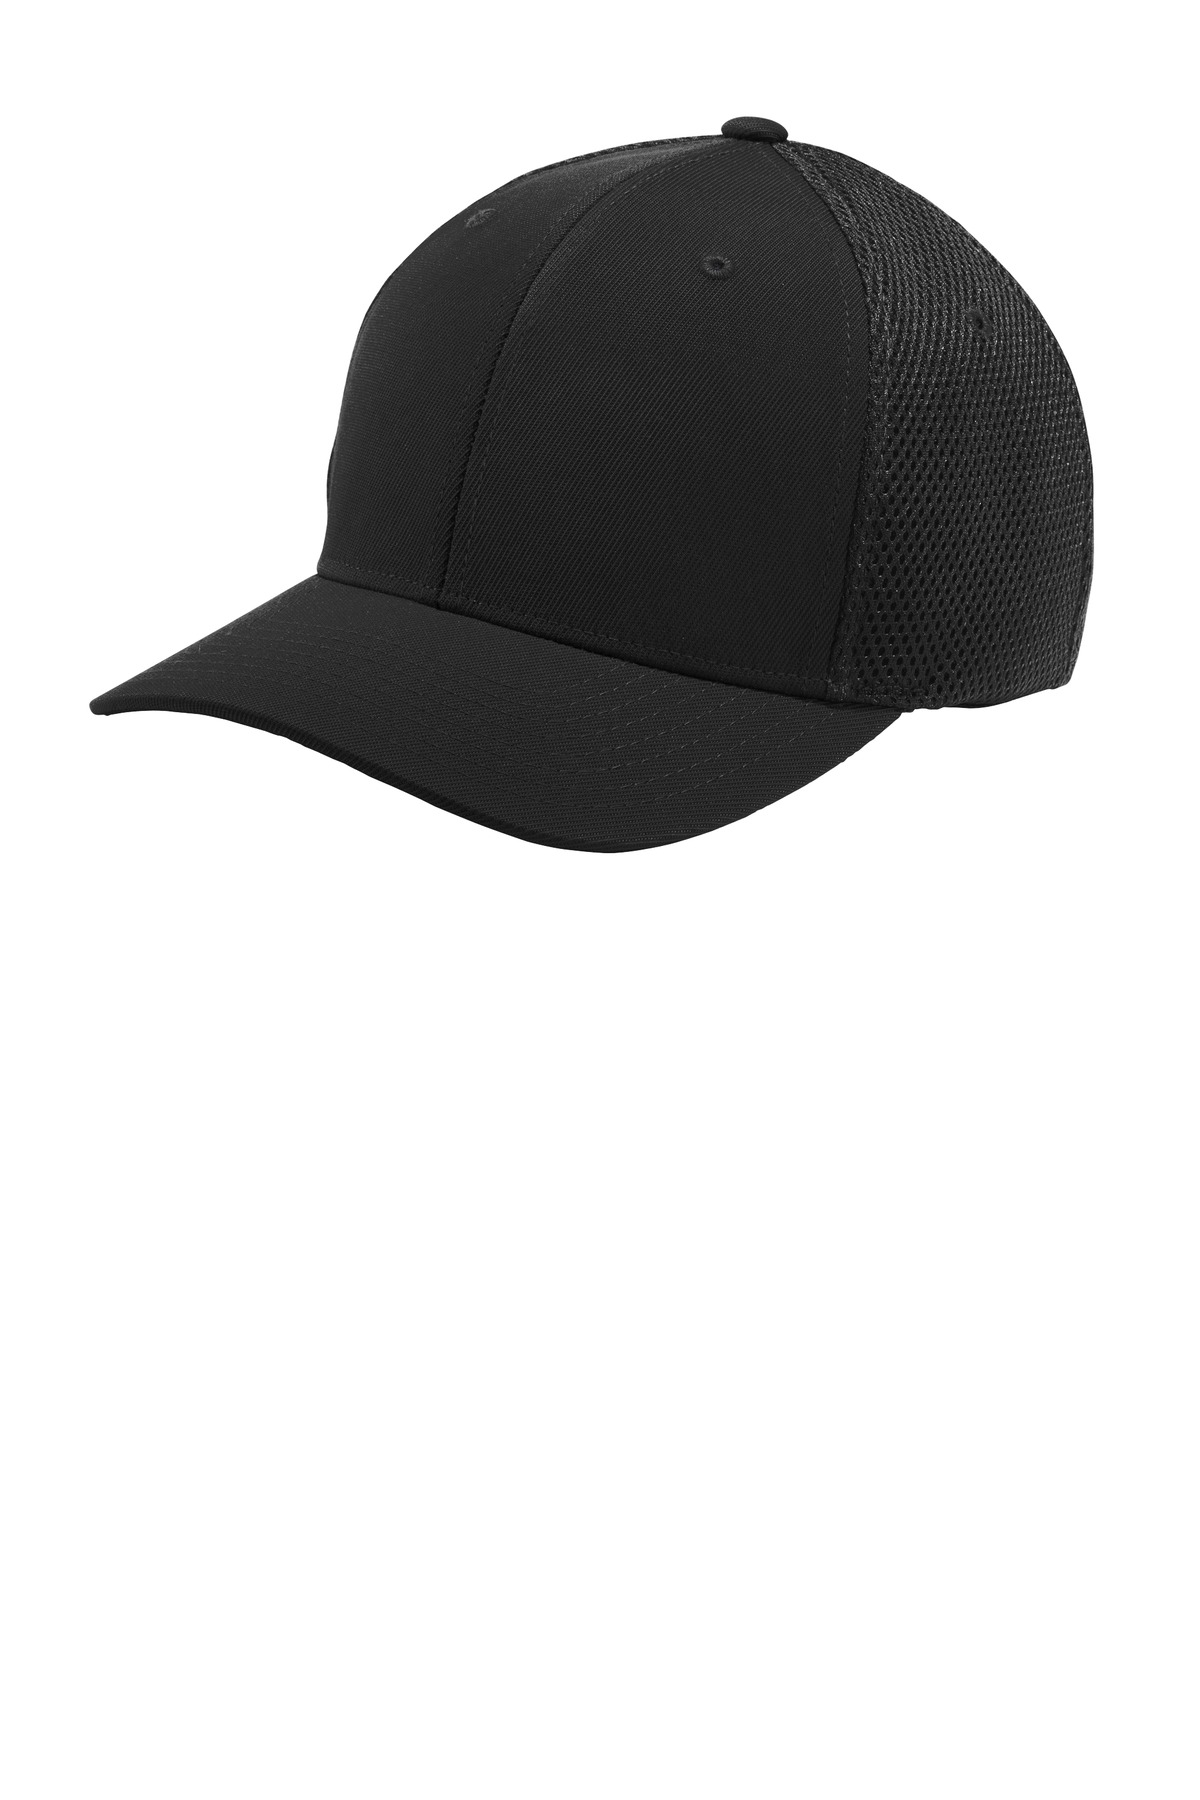 Sport-Tek  ®  Flexfit  ®  Air Mesh Back Cap. STC40 - Black/ Black